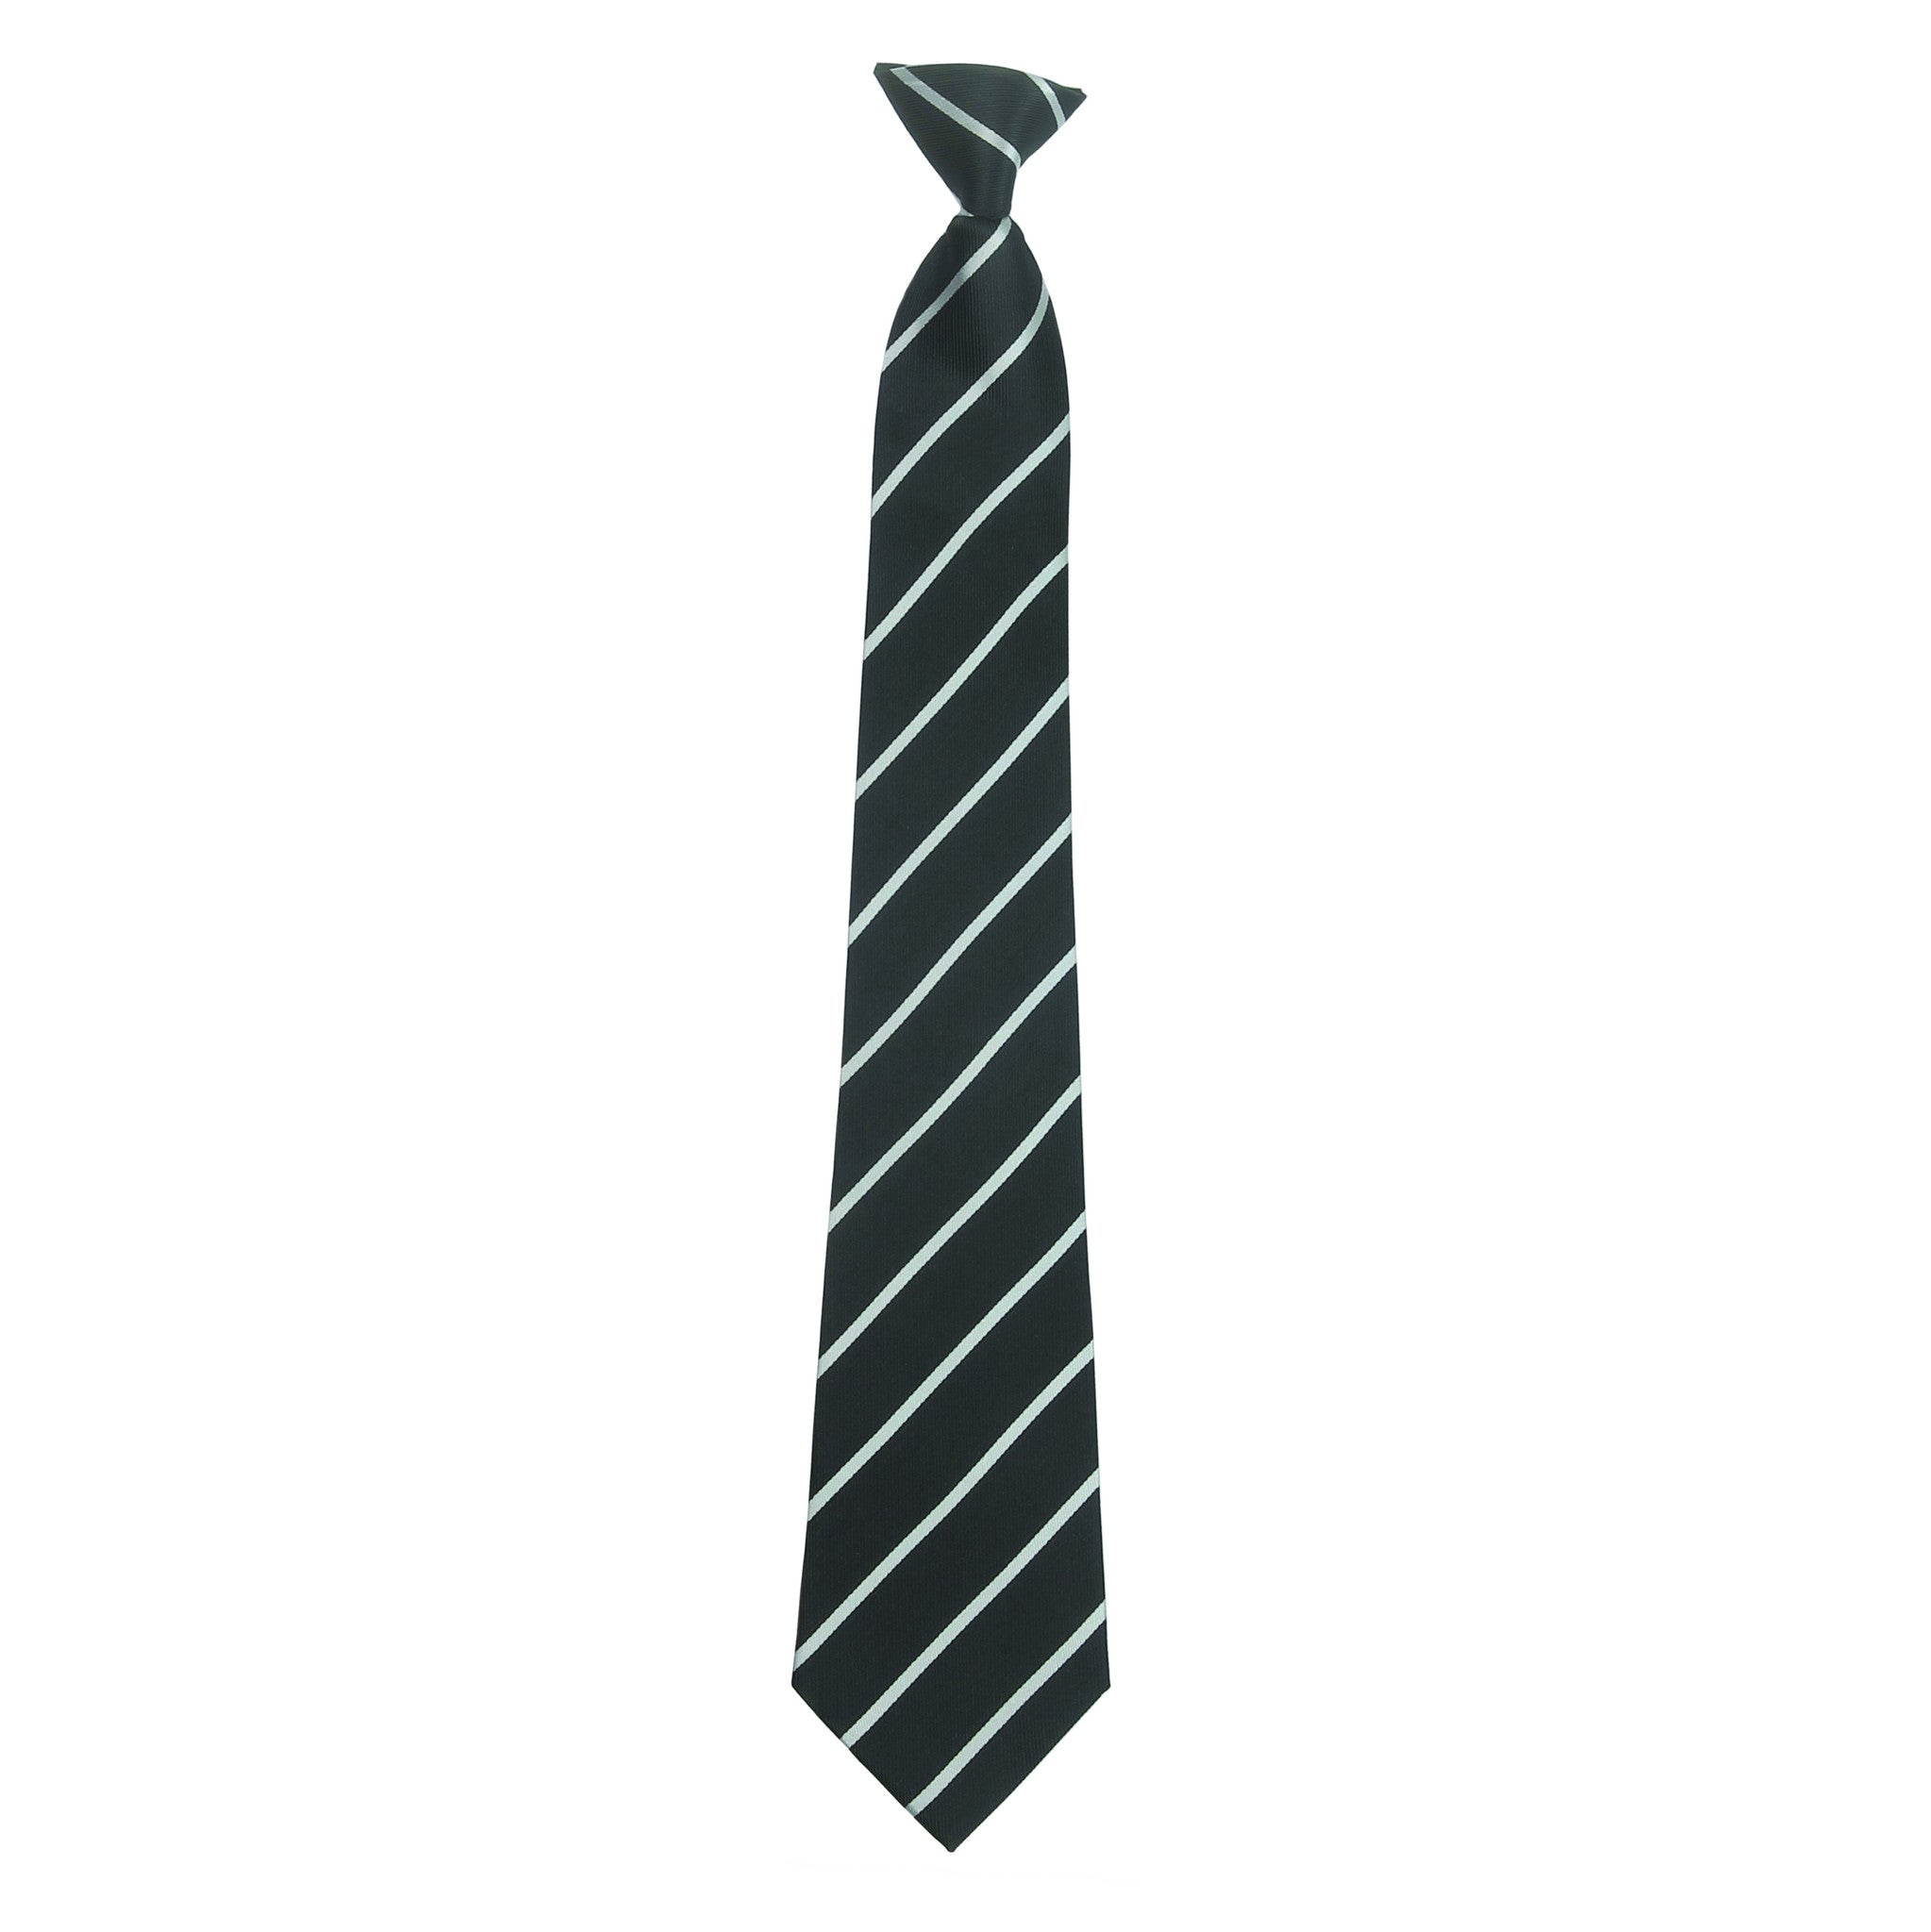 Premier Striped Ties - peterdrew.com  - 2